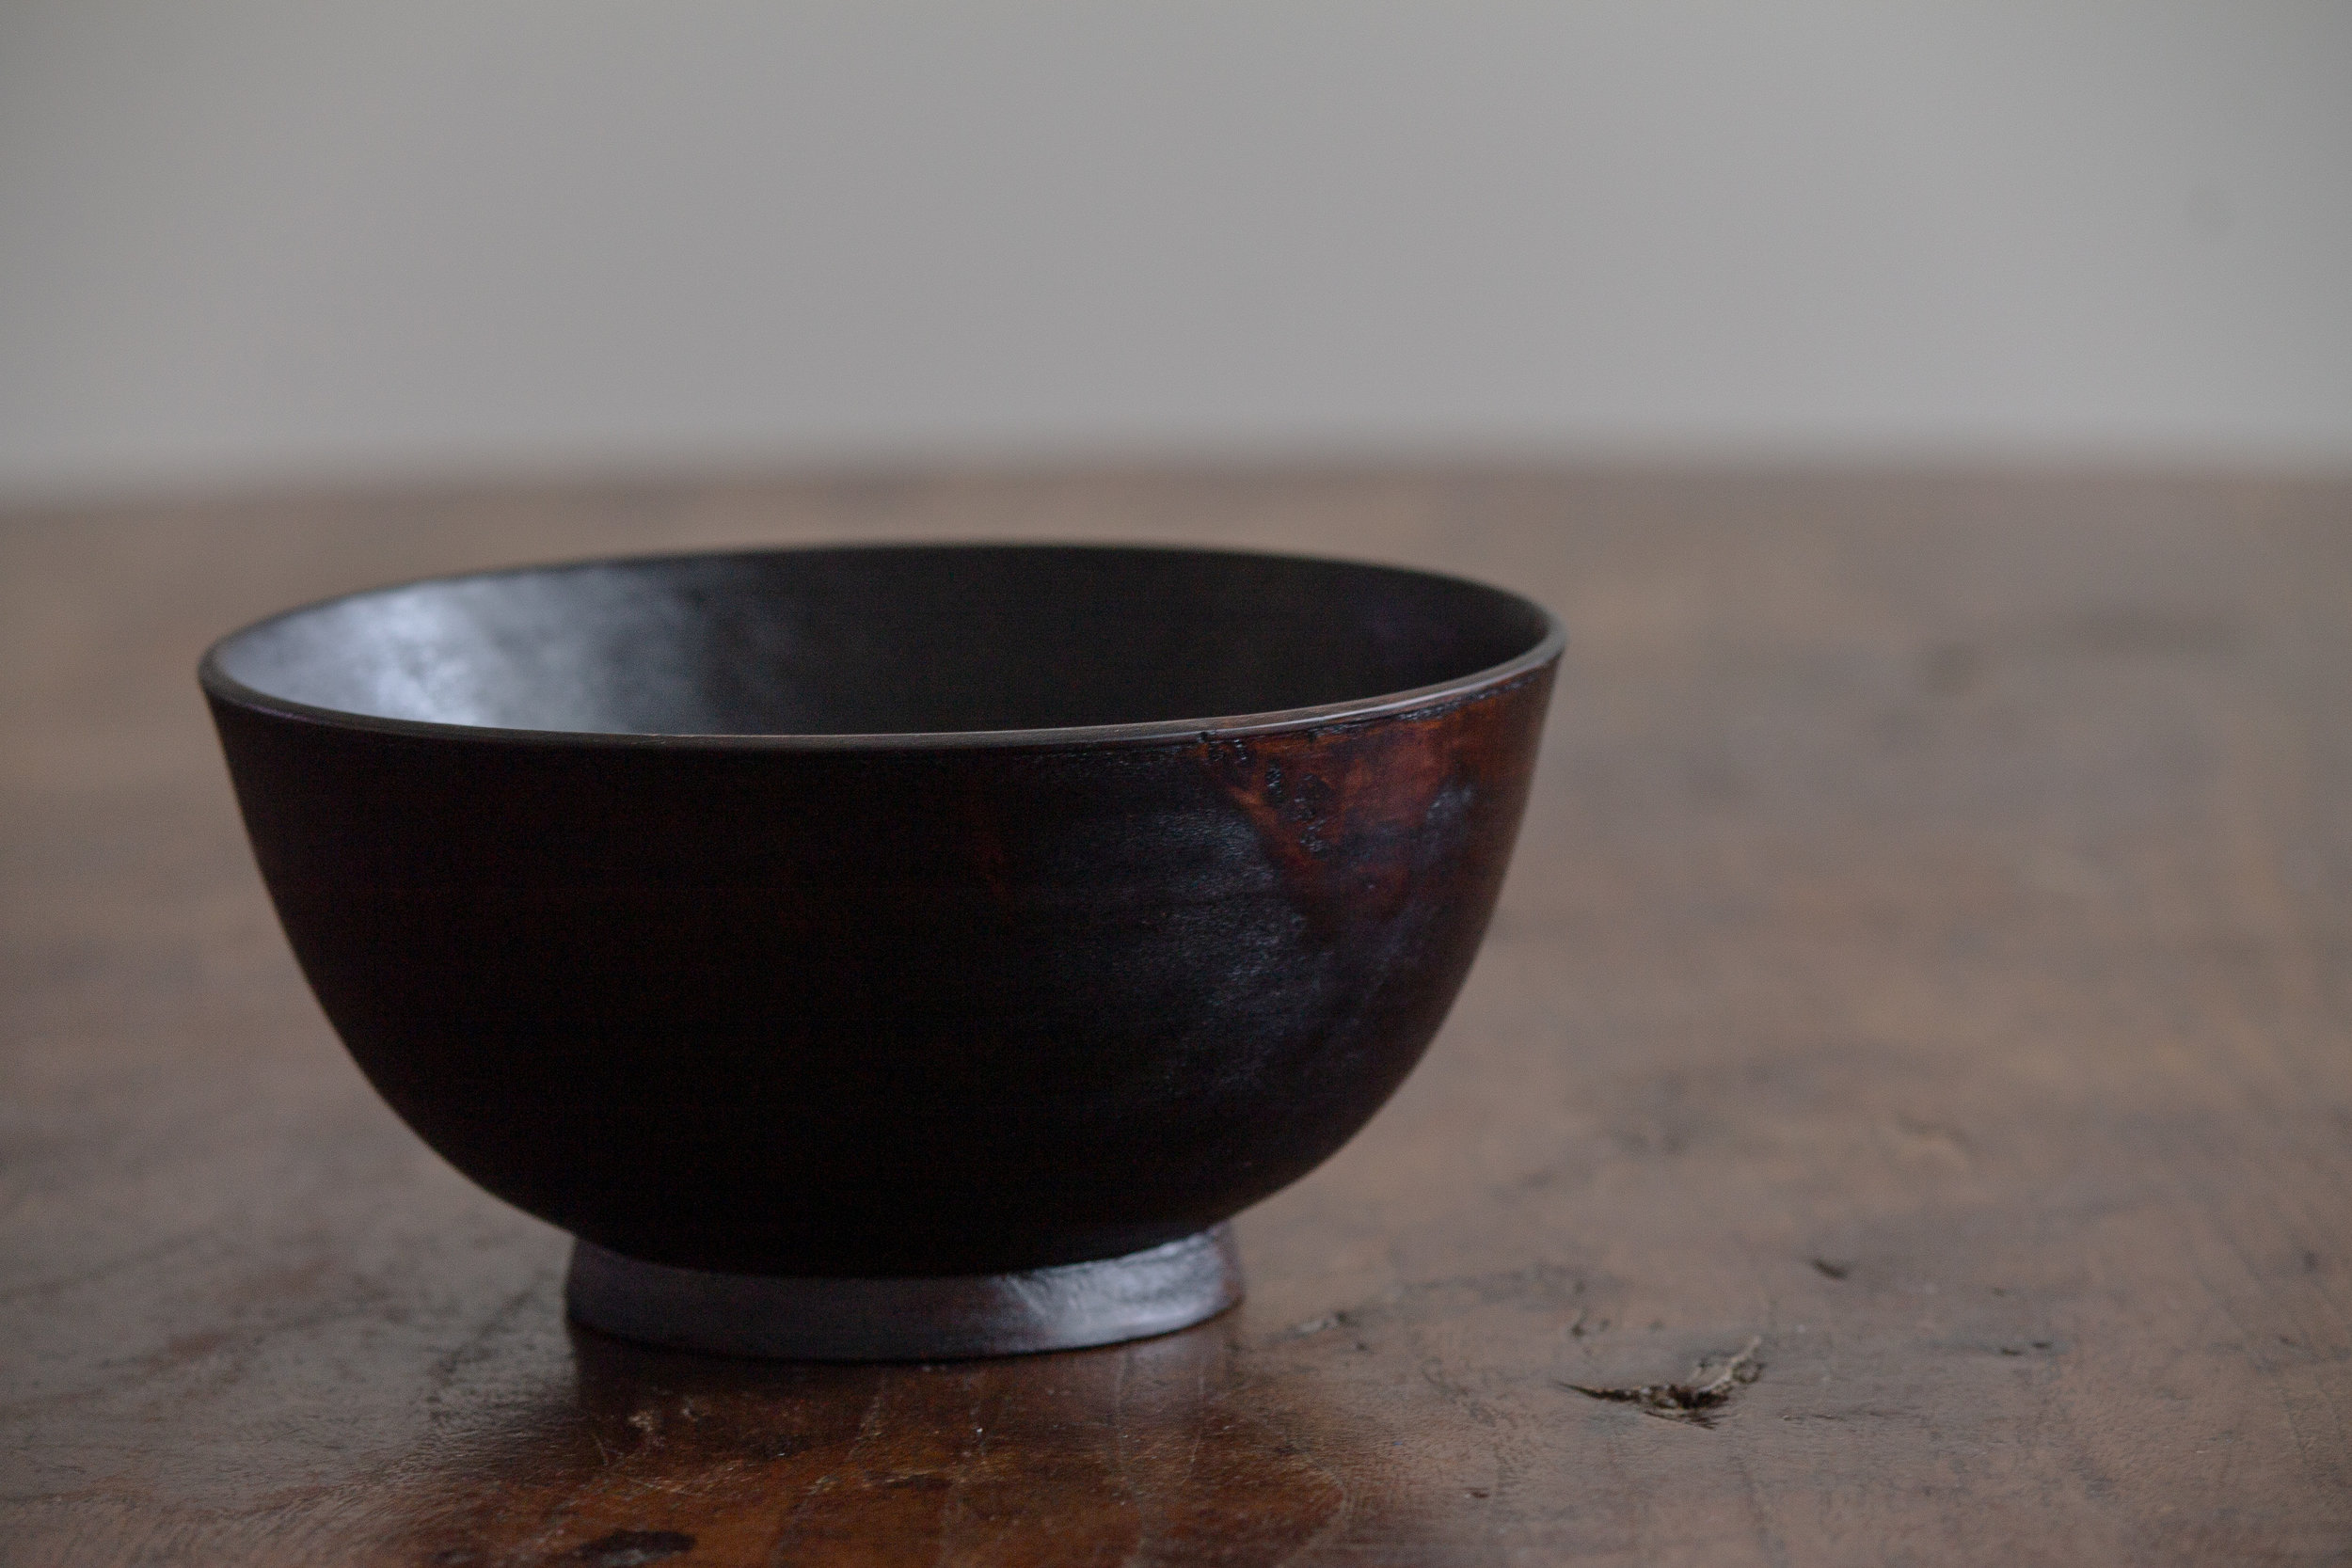 One of my bowls finished with urushi lacquer.